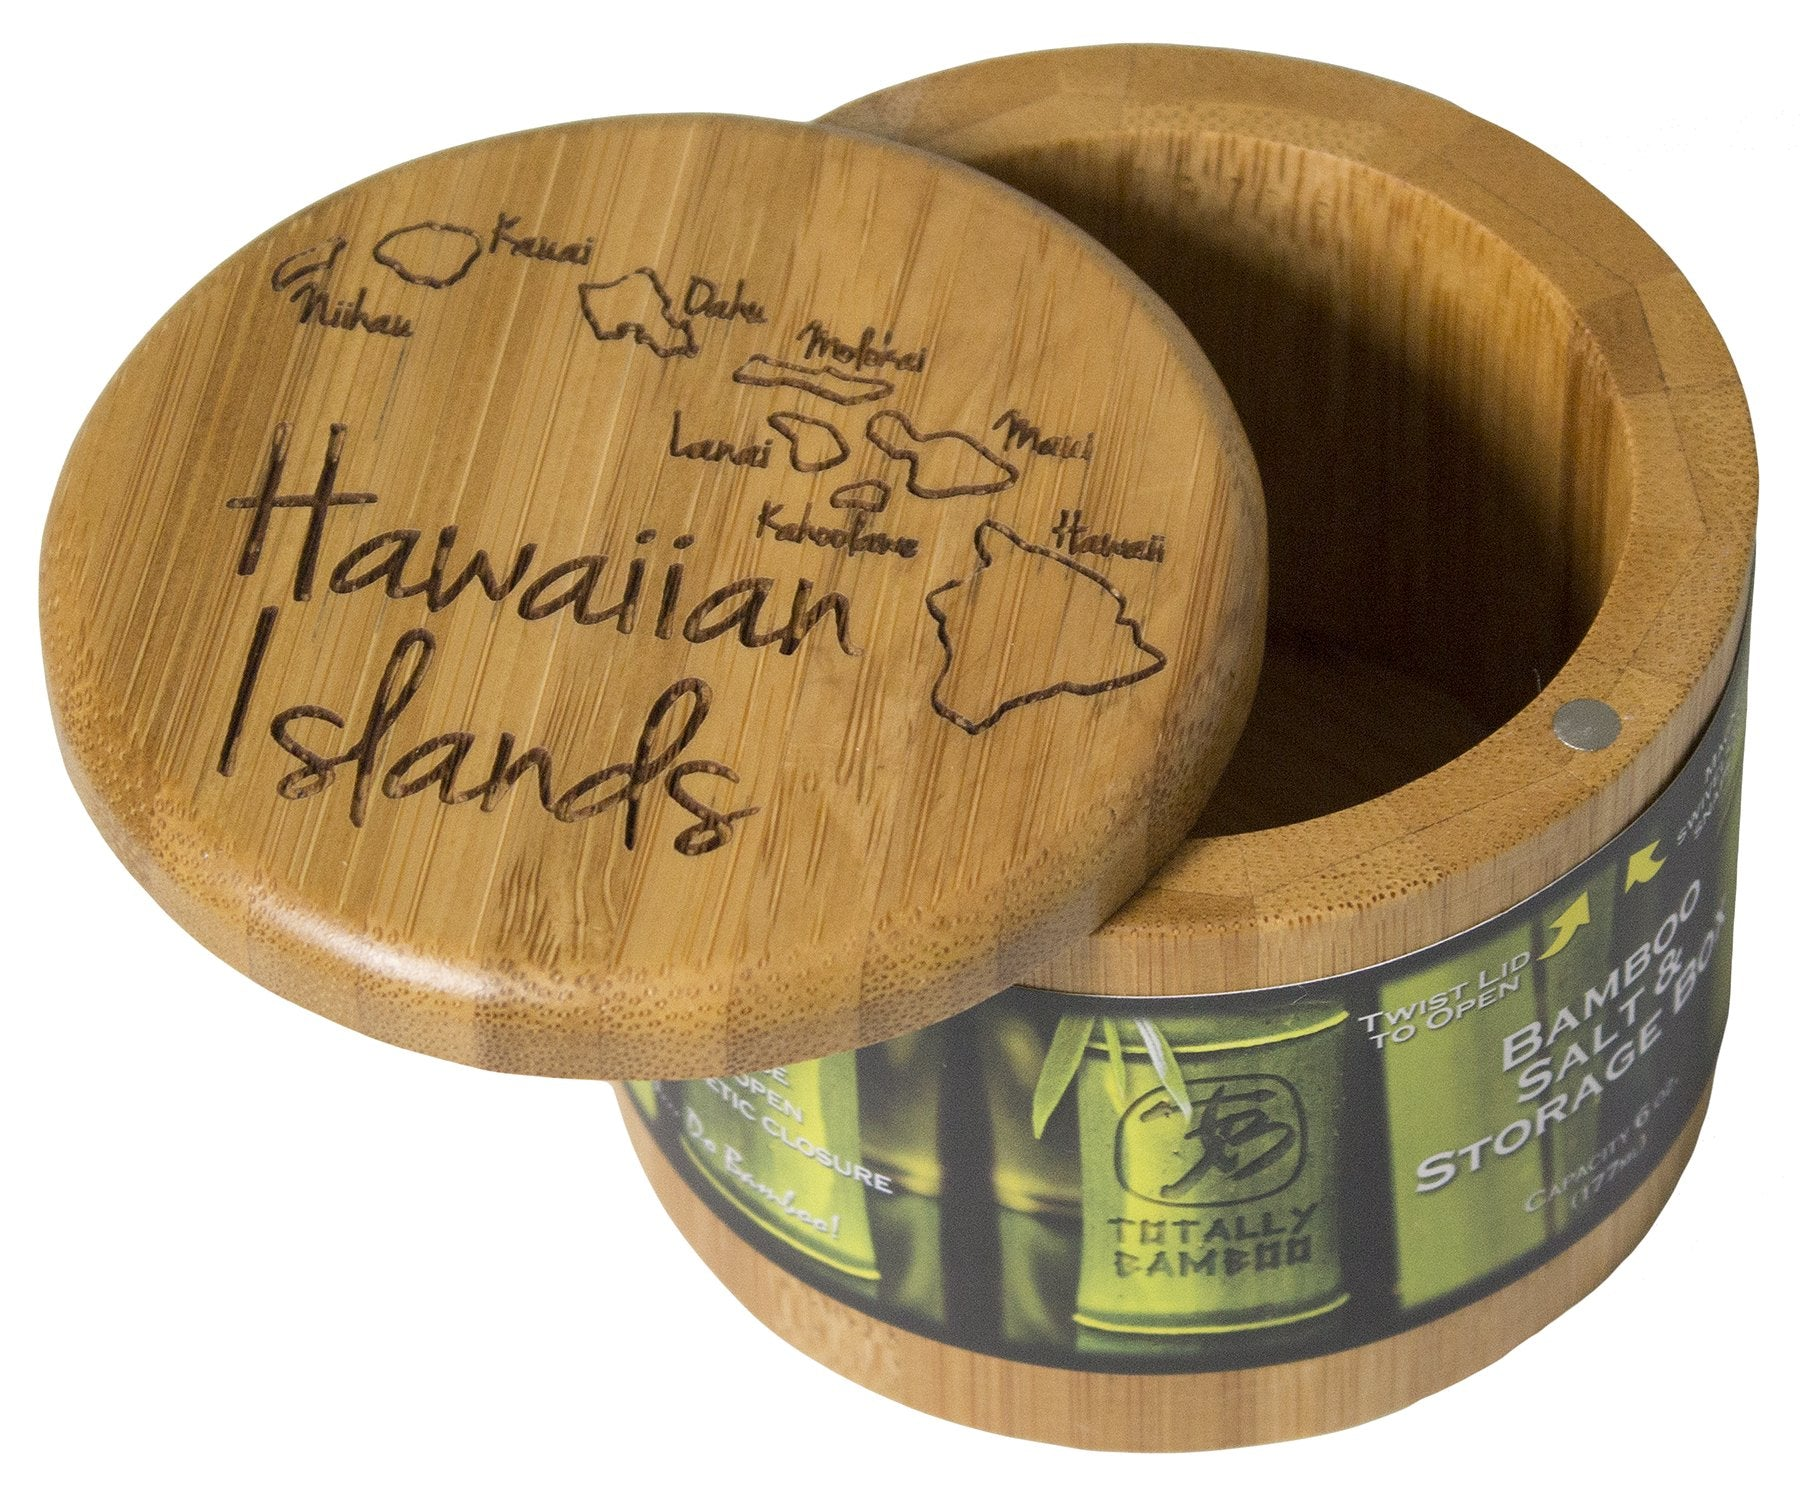 Totally Bamboo Salt Box Hawaiian Islands